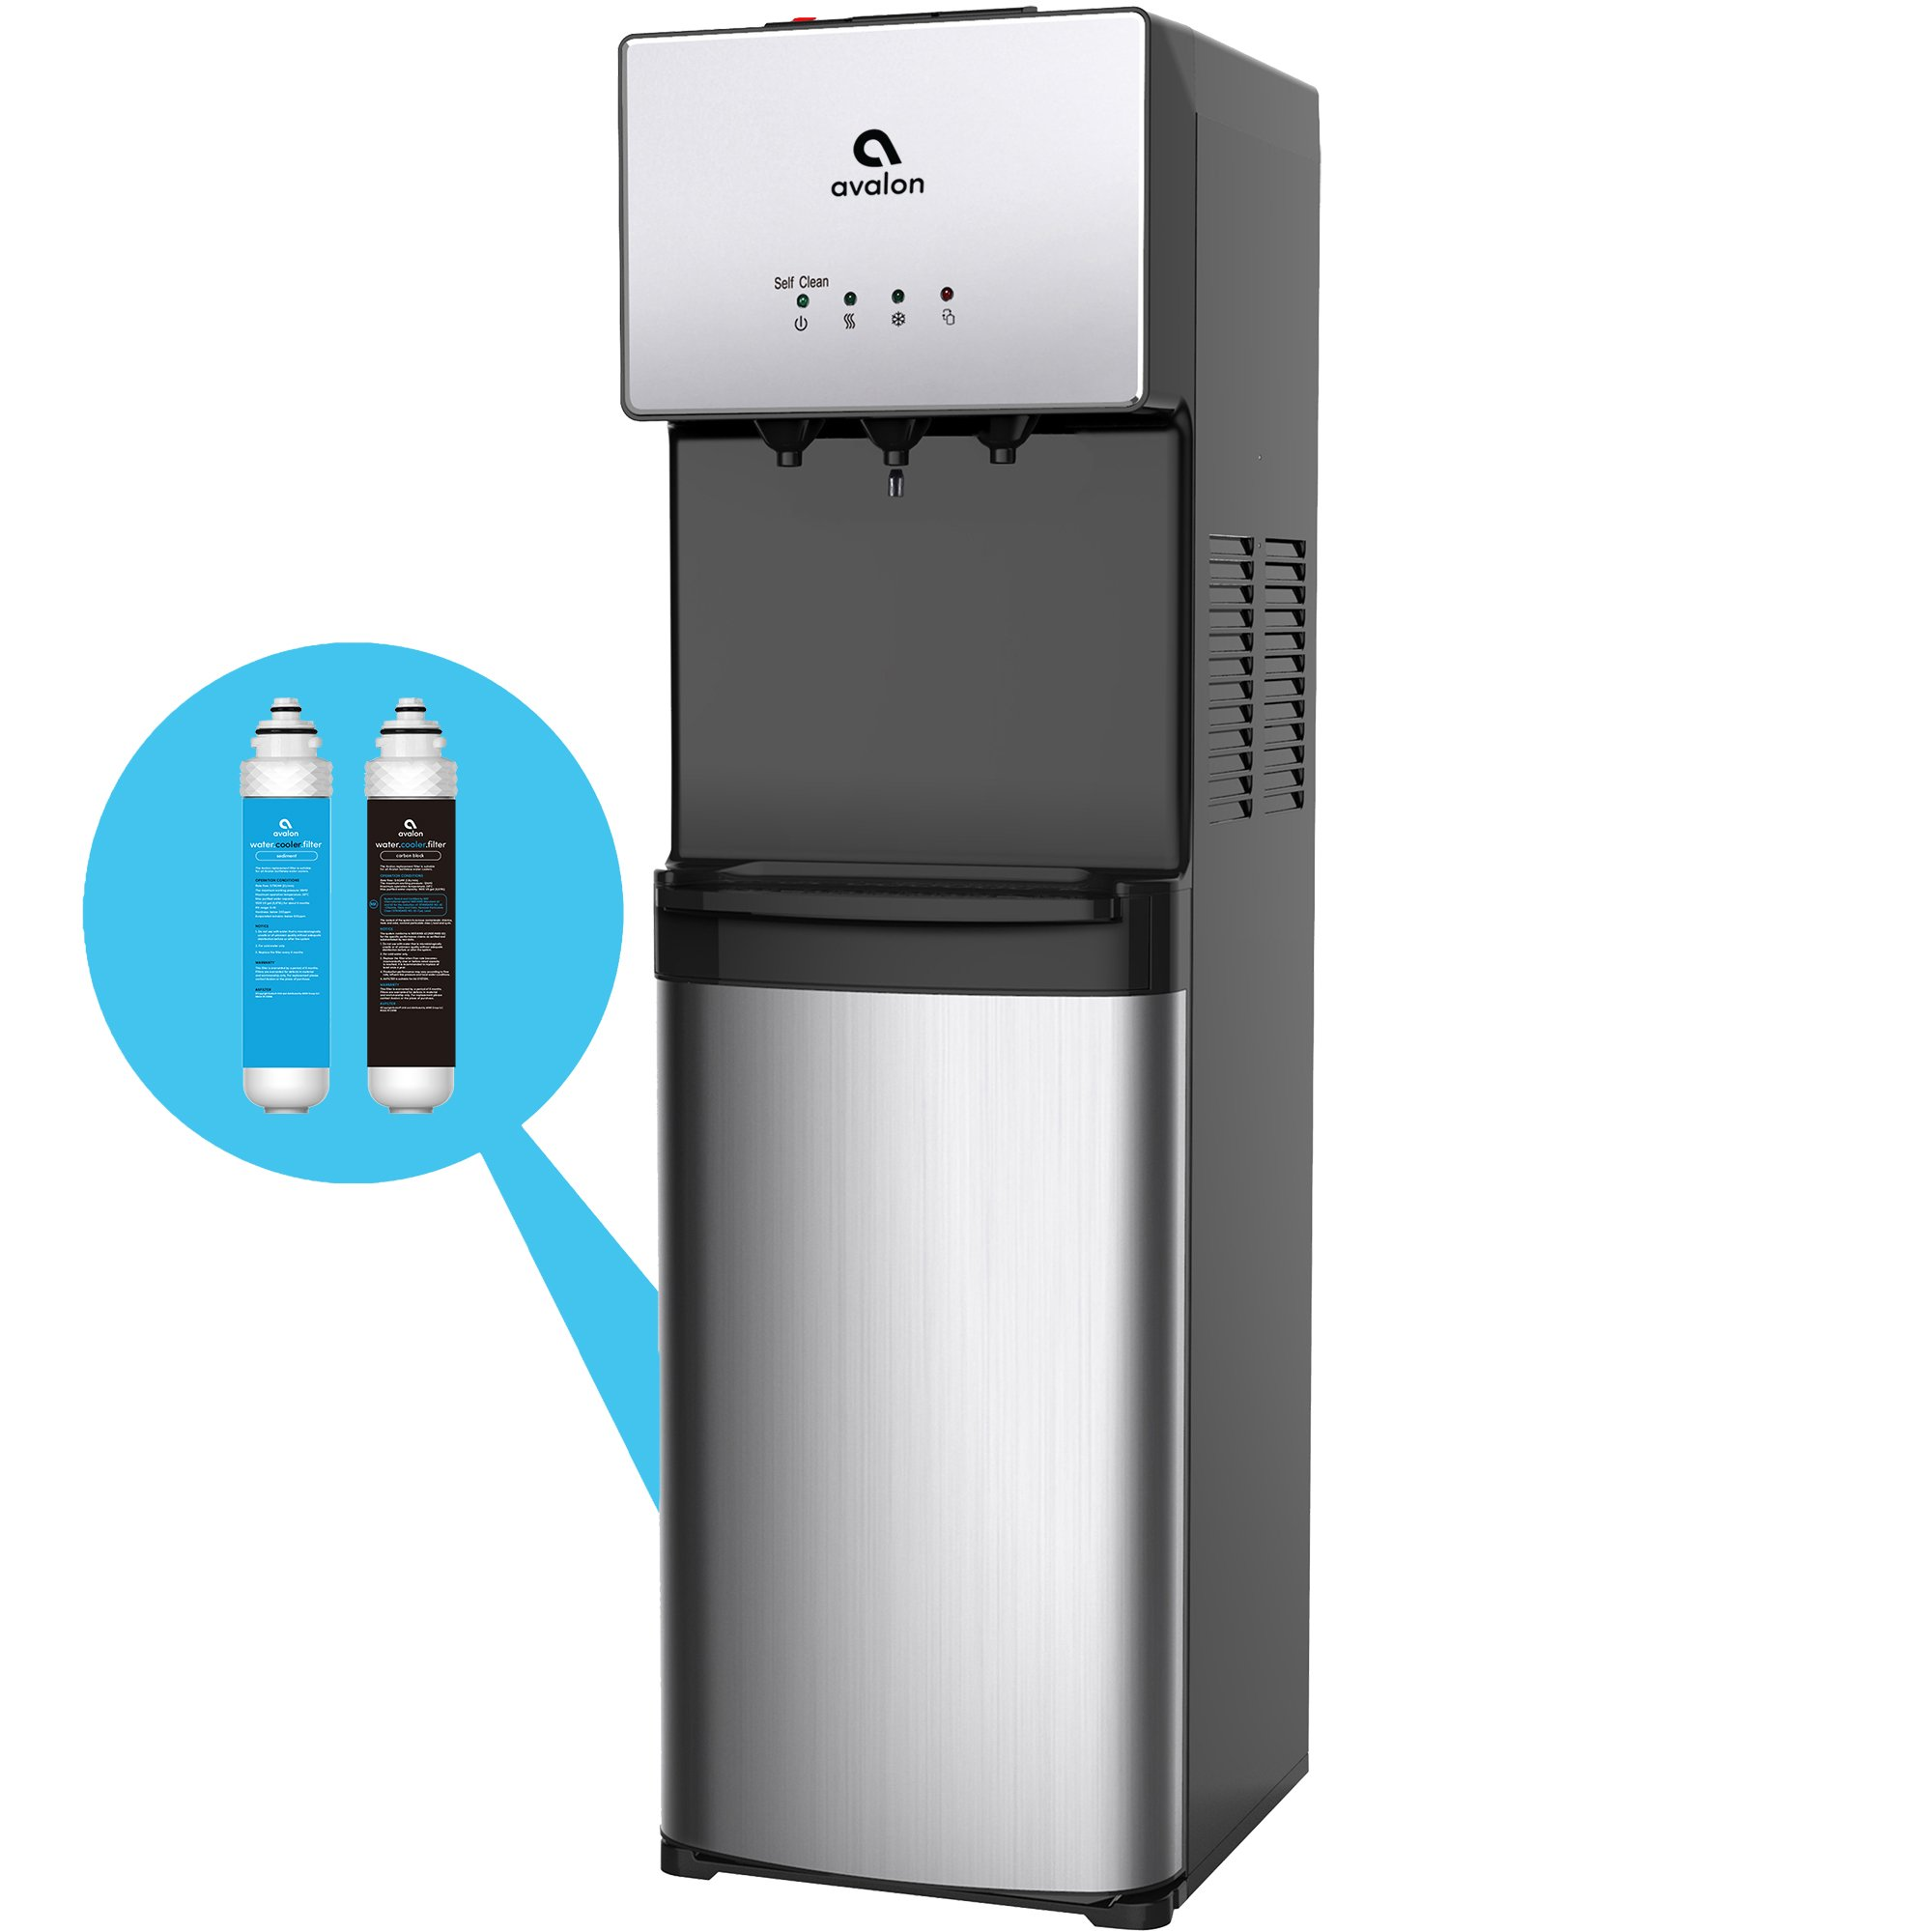 Ordinaire Avalon Self Cleaning Bottleless Water Cooler Water Dispenser   3  Temperature Settings   Hot, Cold